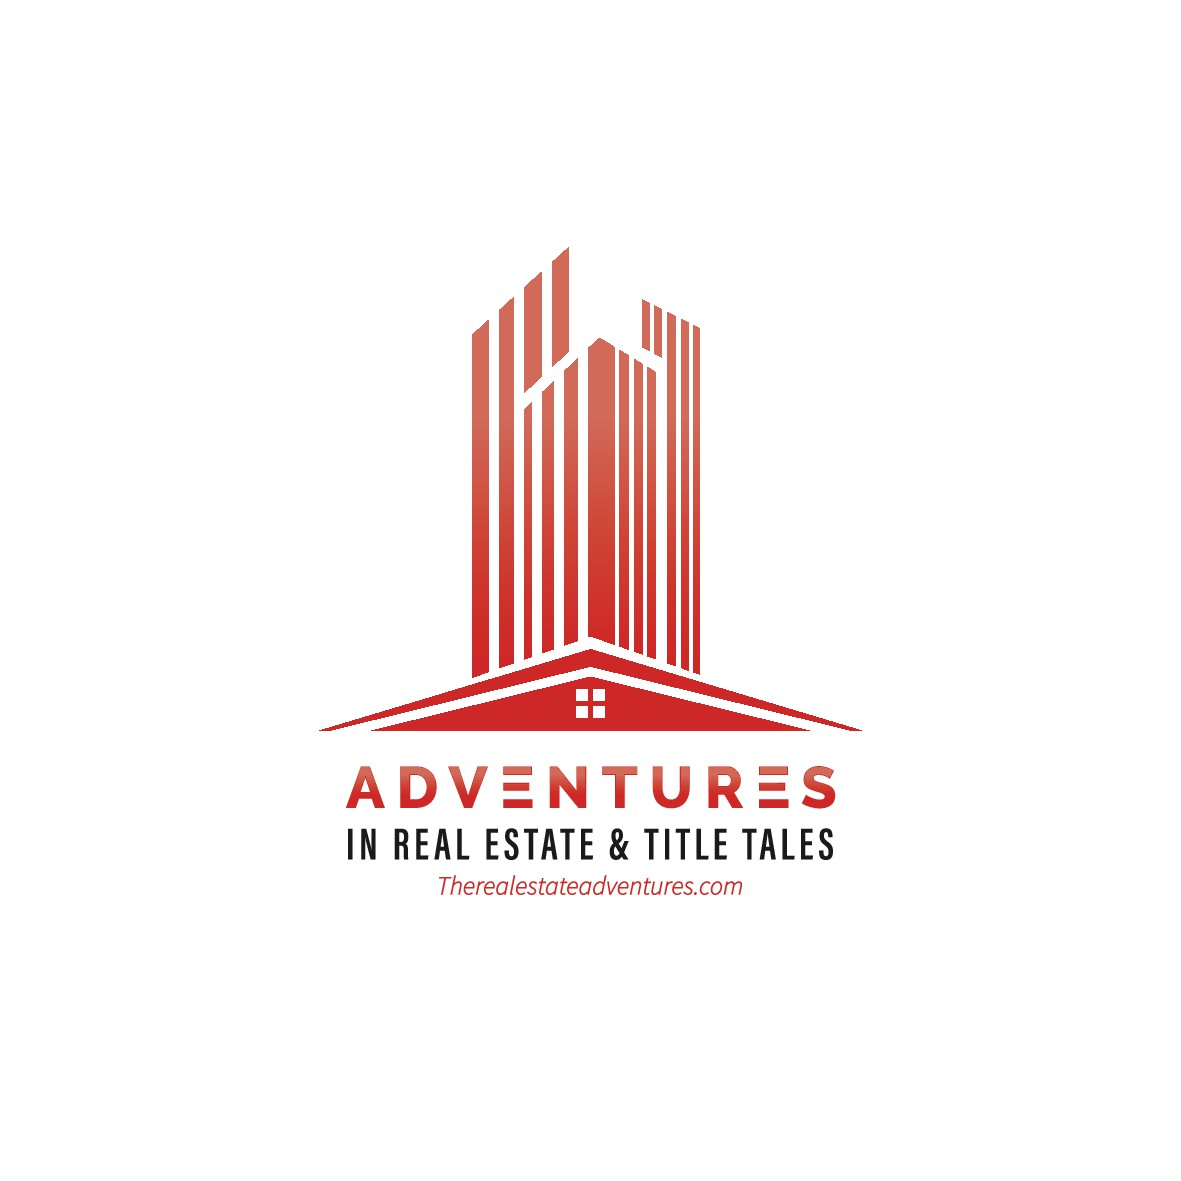 Adventures in Real Estate needs an eye catching logo!